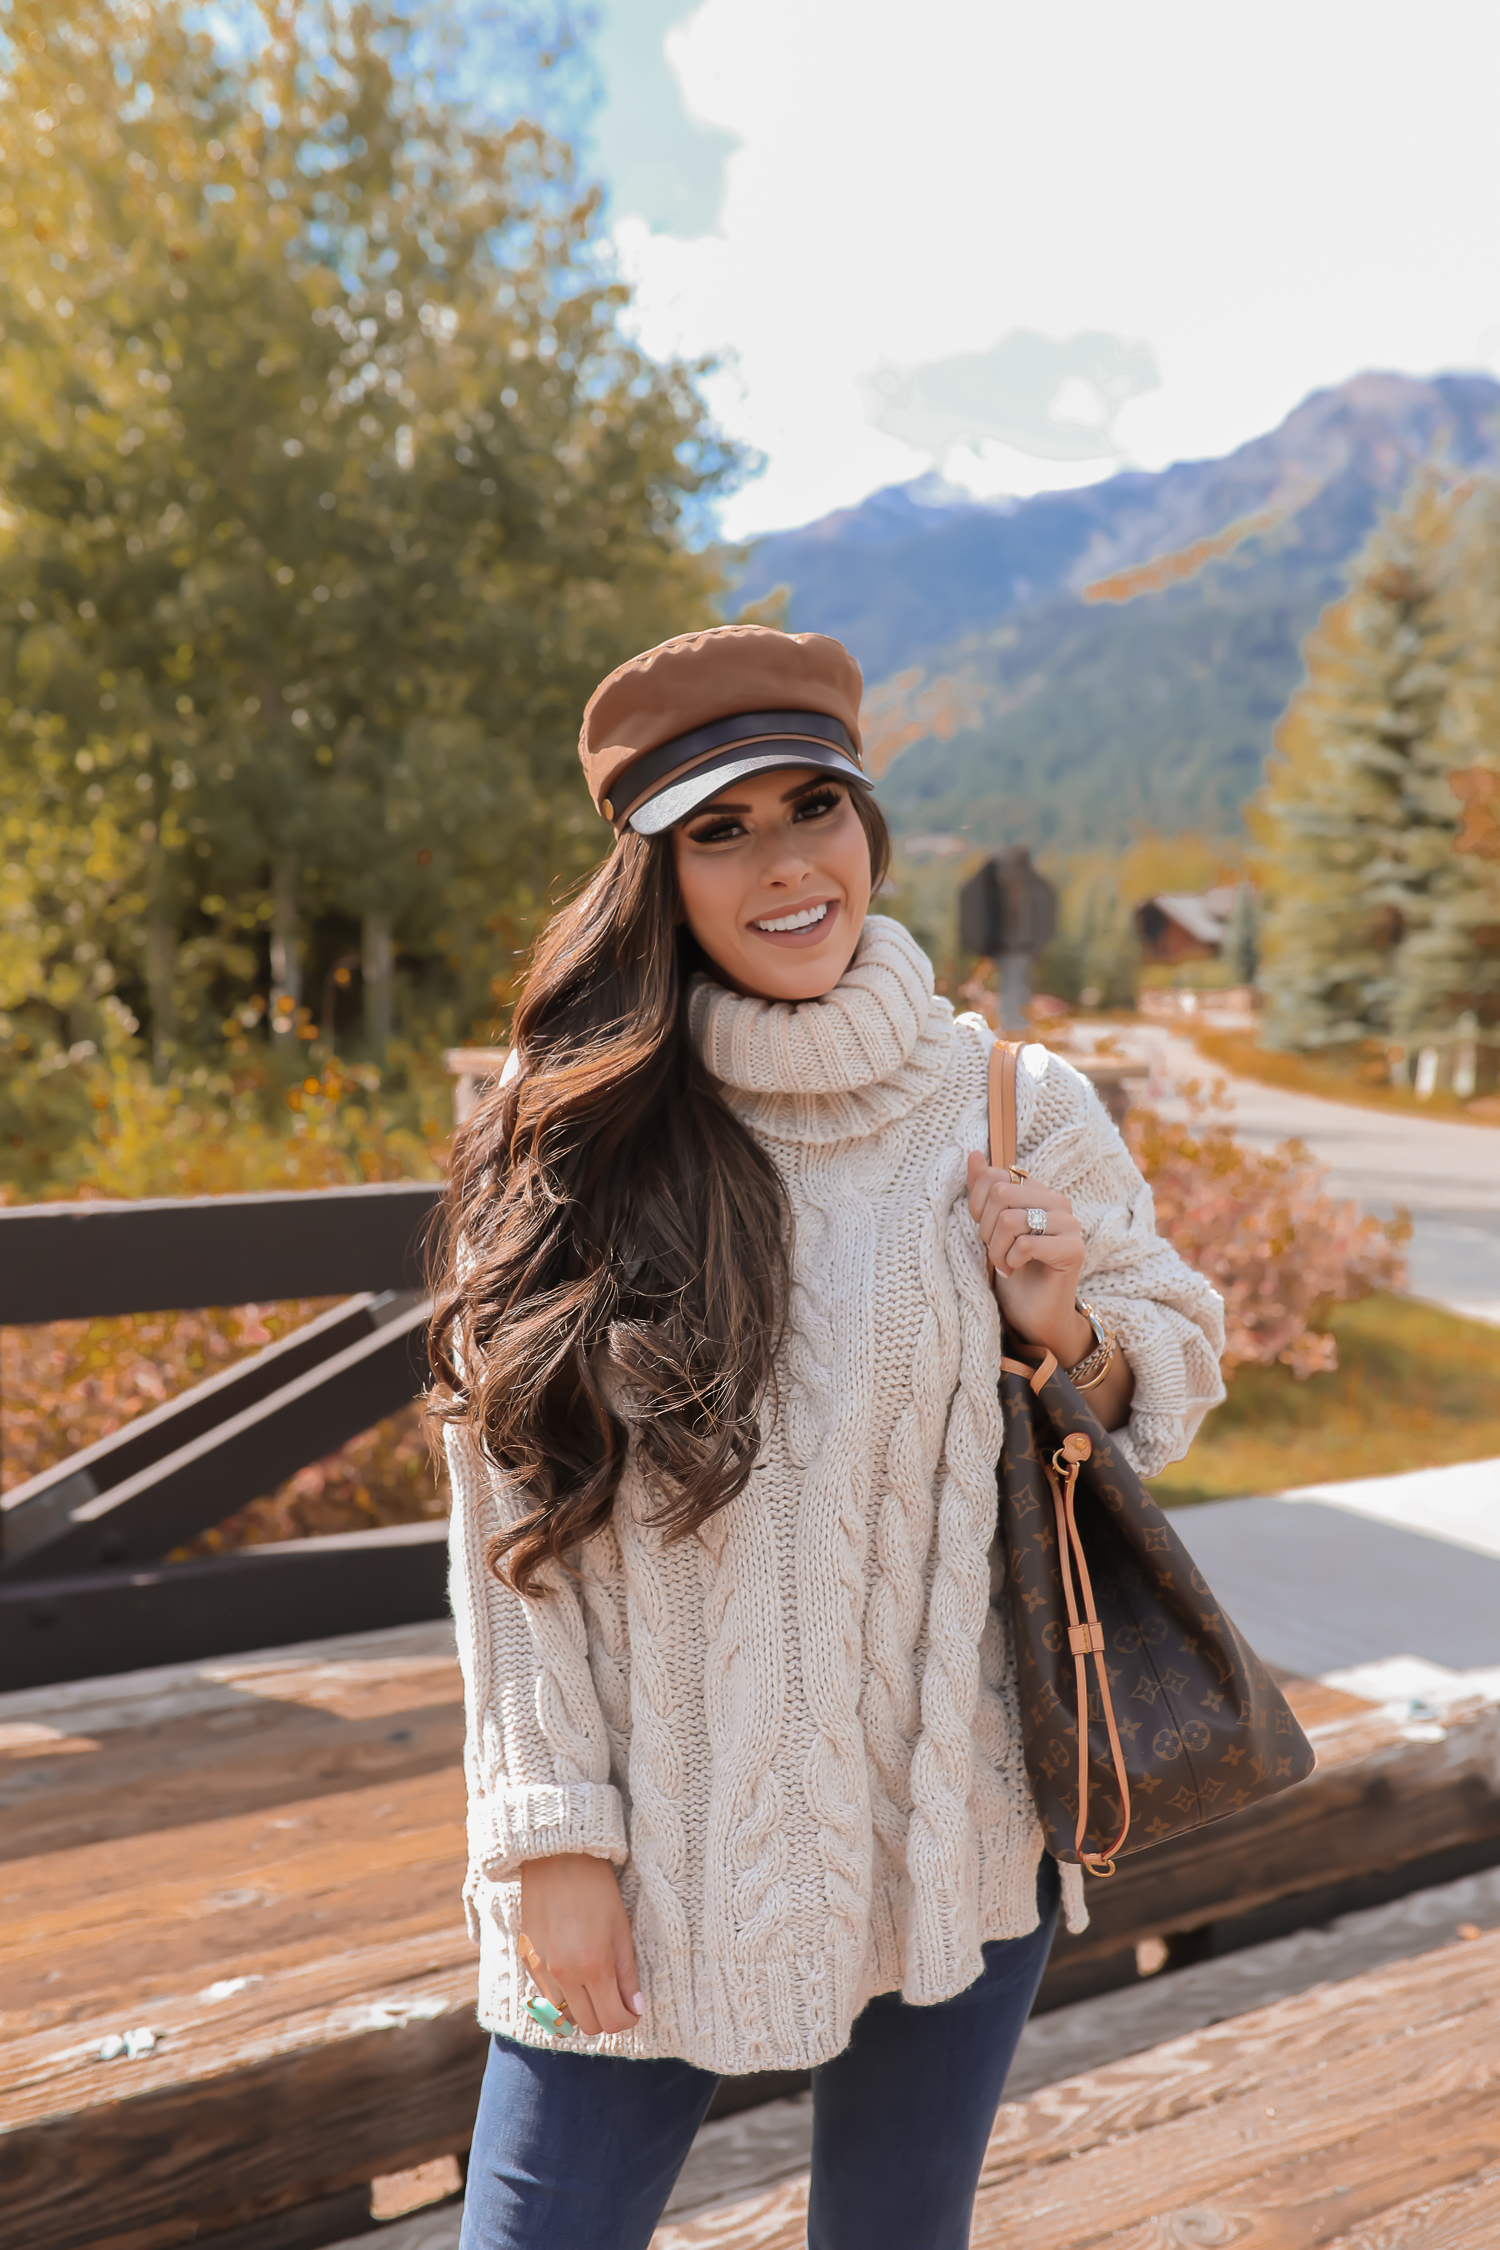 Cable knit sweater styled for Fall by top US fashion blog, The Sweetest Thing: image of a woman wearing a Topshop cable knit sweater, Express jeans, Steve Madden booties, Louis Vuitton handbag and Free People Ring.| fall sweaters and booties pinterest 2019,jackson hole fashion blogger, fall fashion 2019, oversized sweaters topshop nordstorm